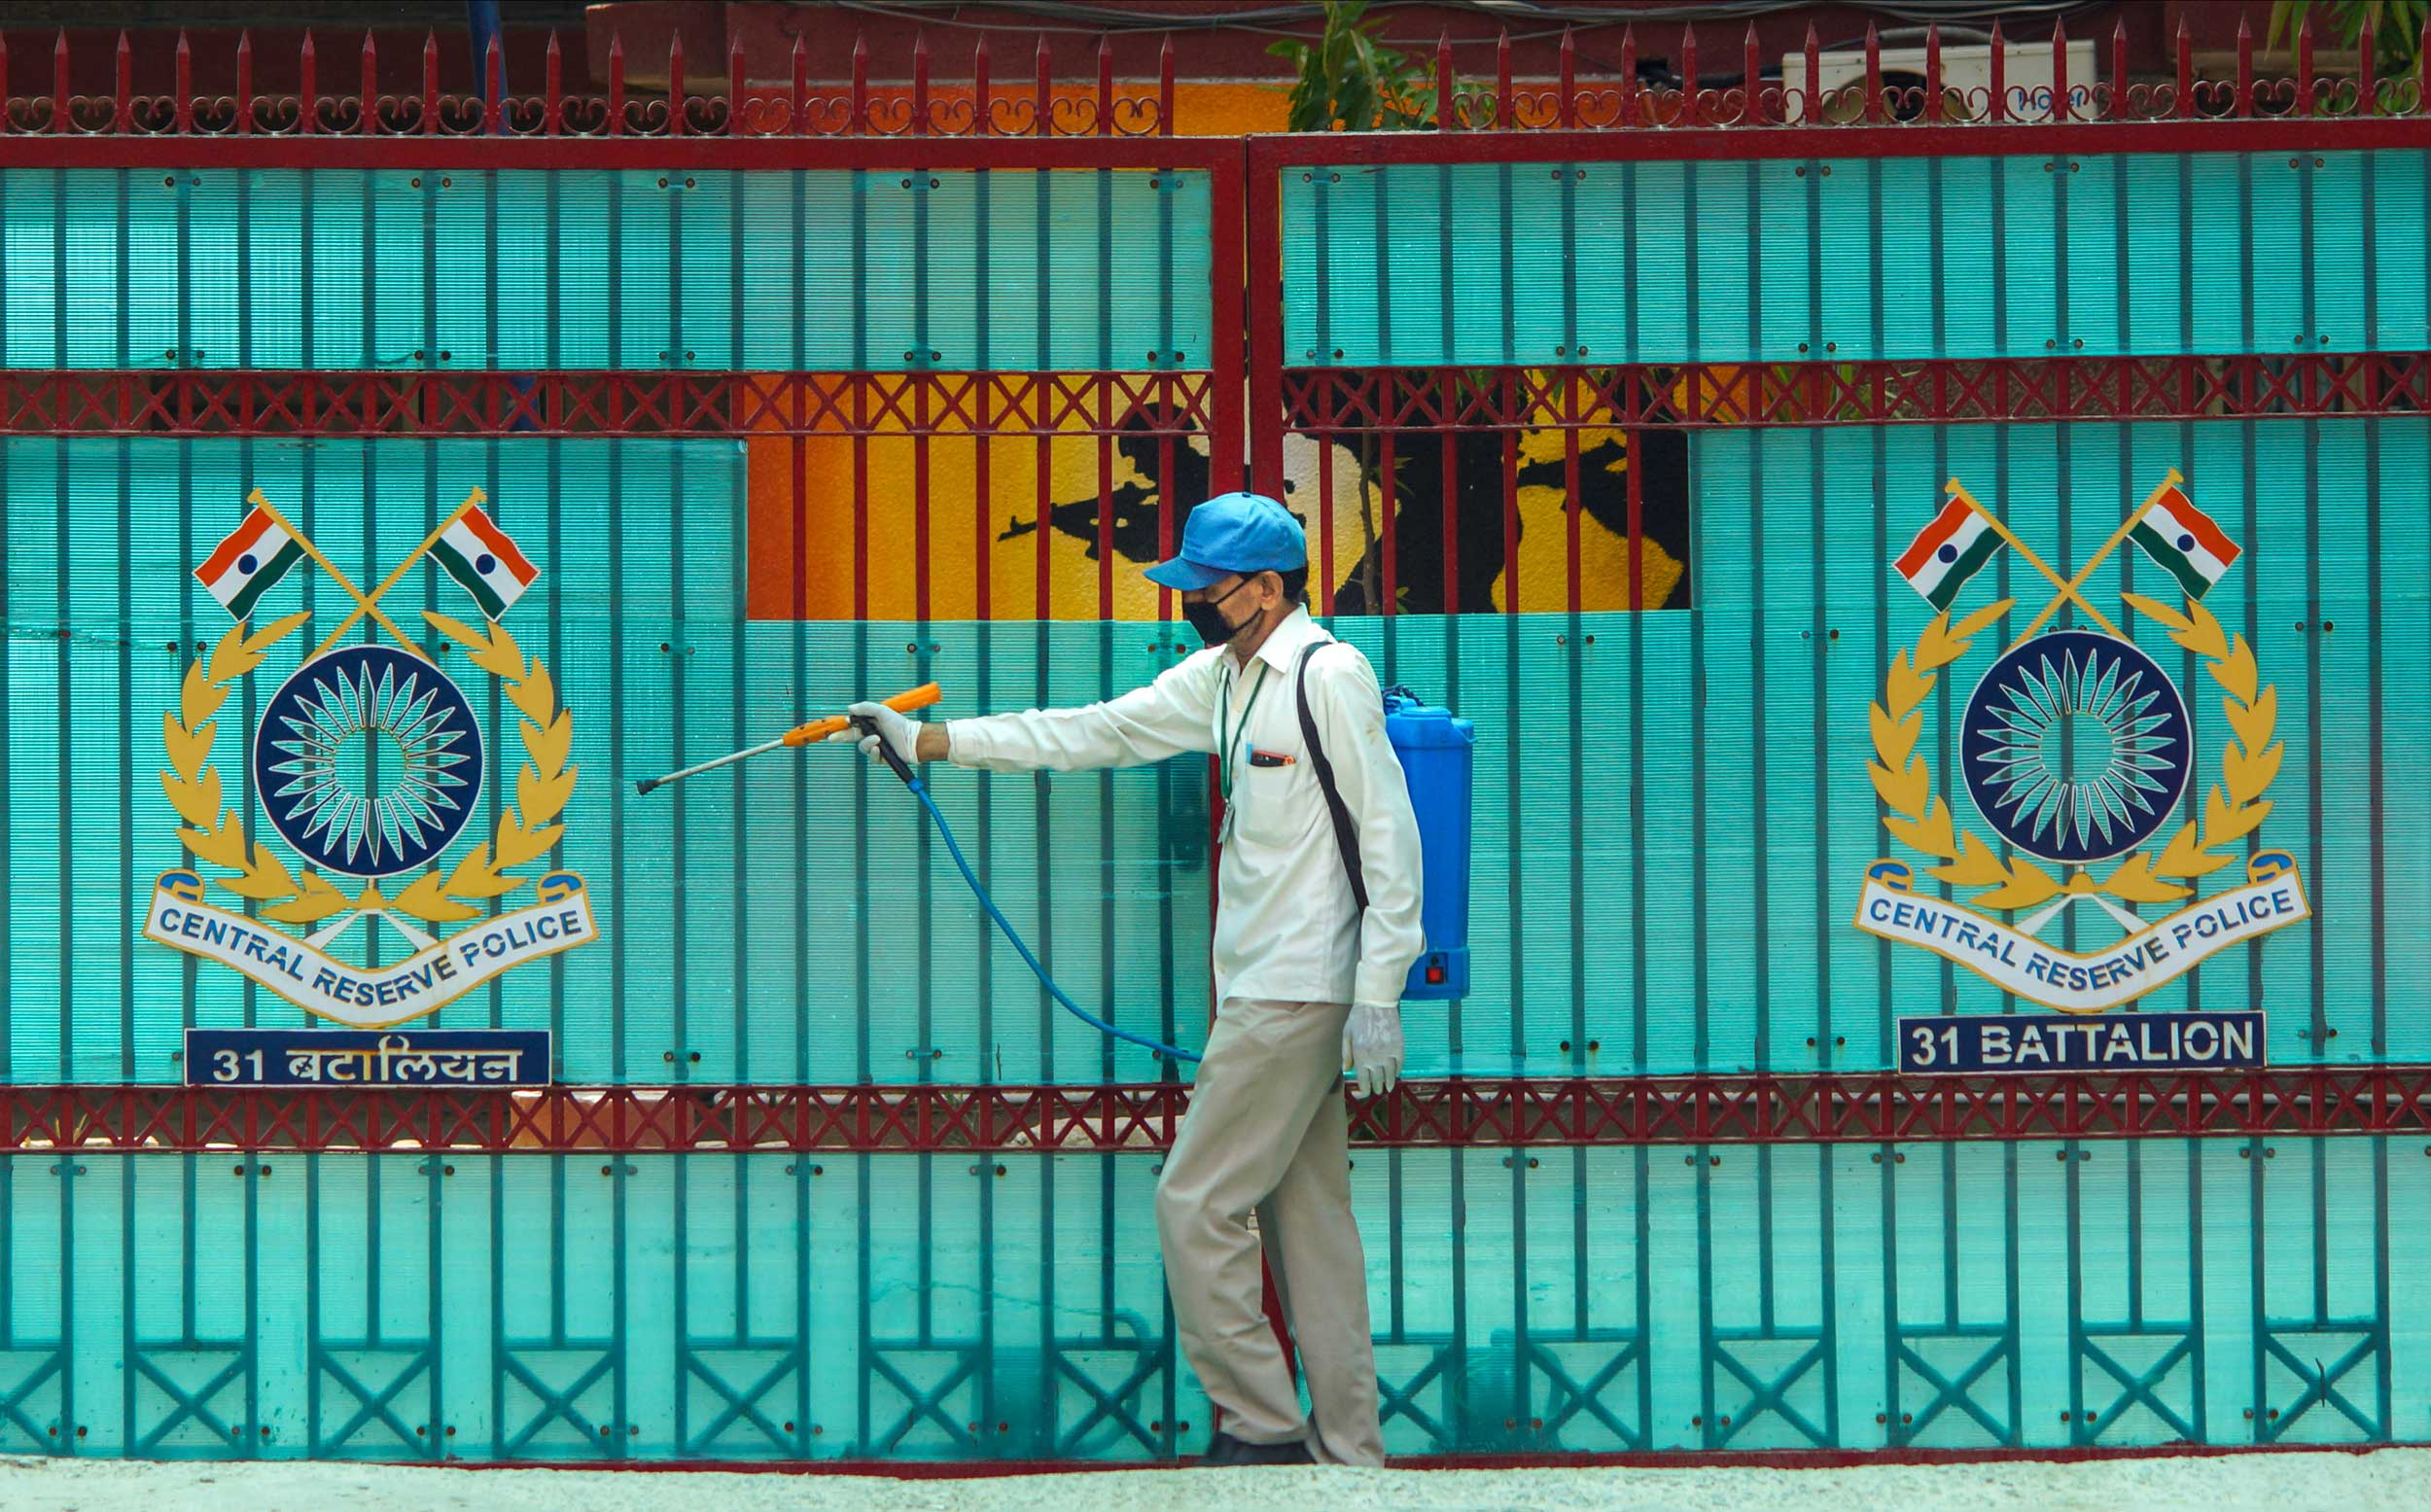 A municipal worker sprays disinfectants outside the CRPF 31st Battalian building in New Delhi on Saturday.